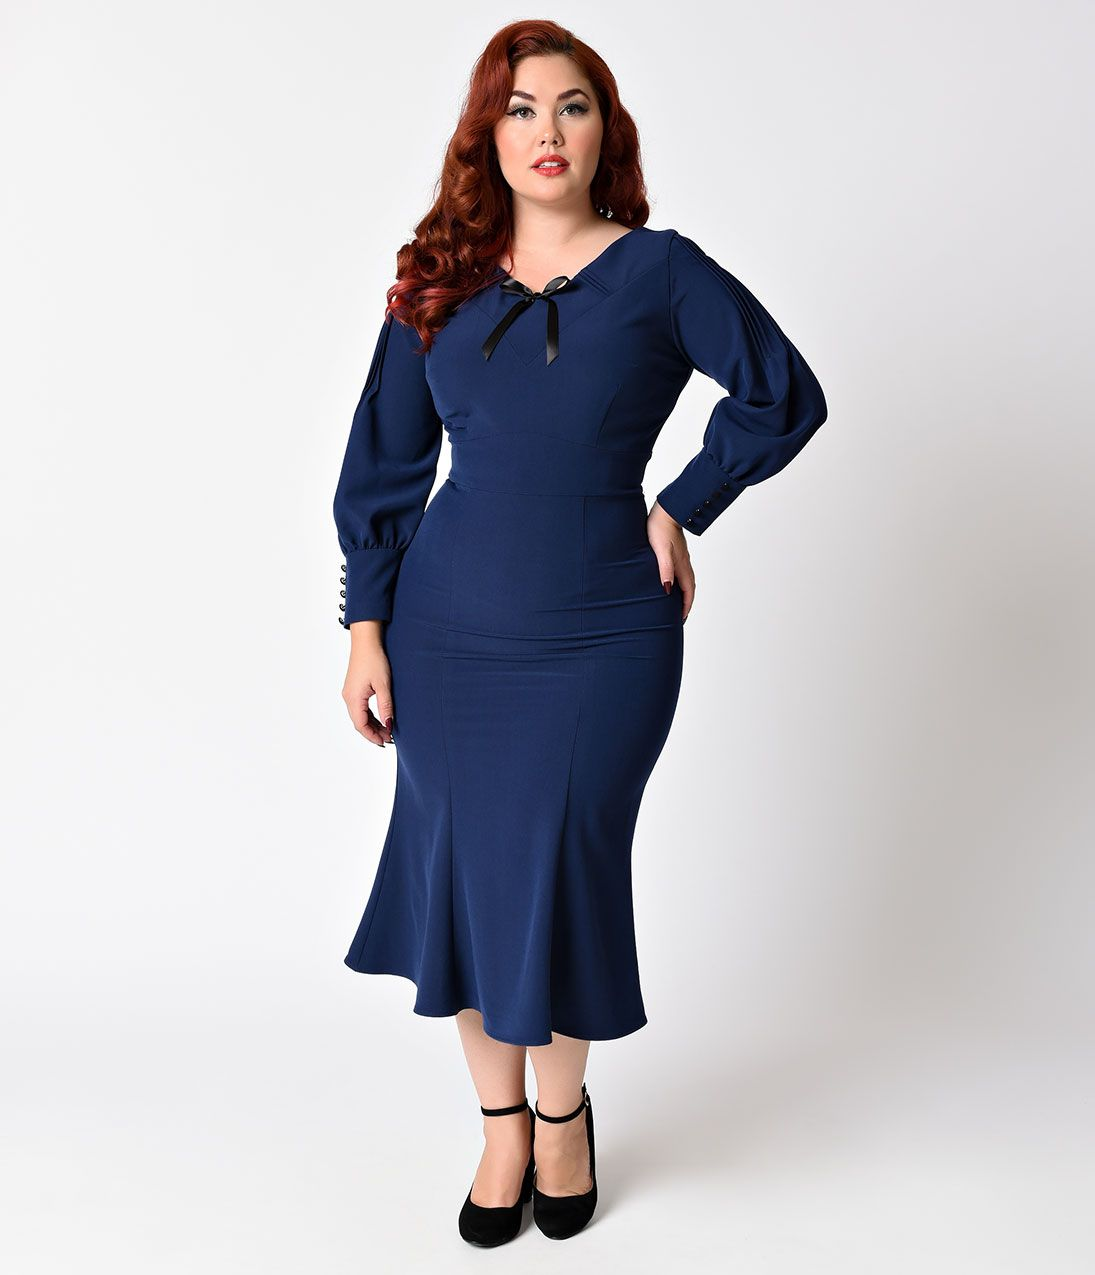 1930s Art Deco Plus Size Dresses   1930s style, Wiggle dress and 1930s